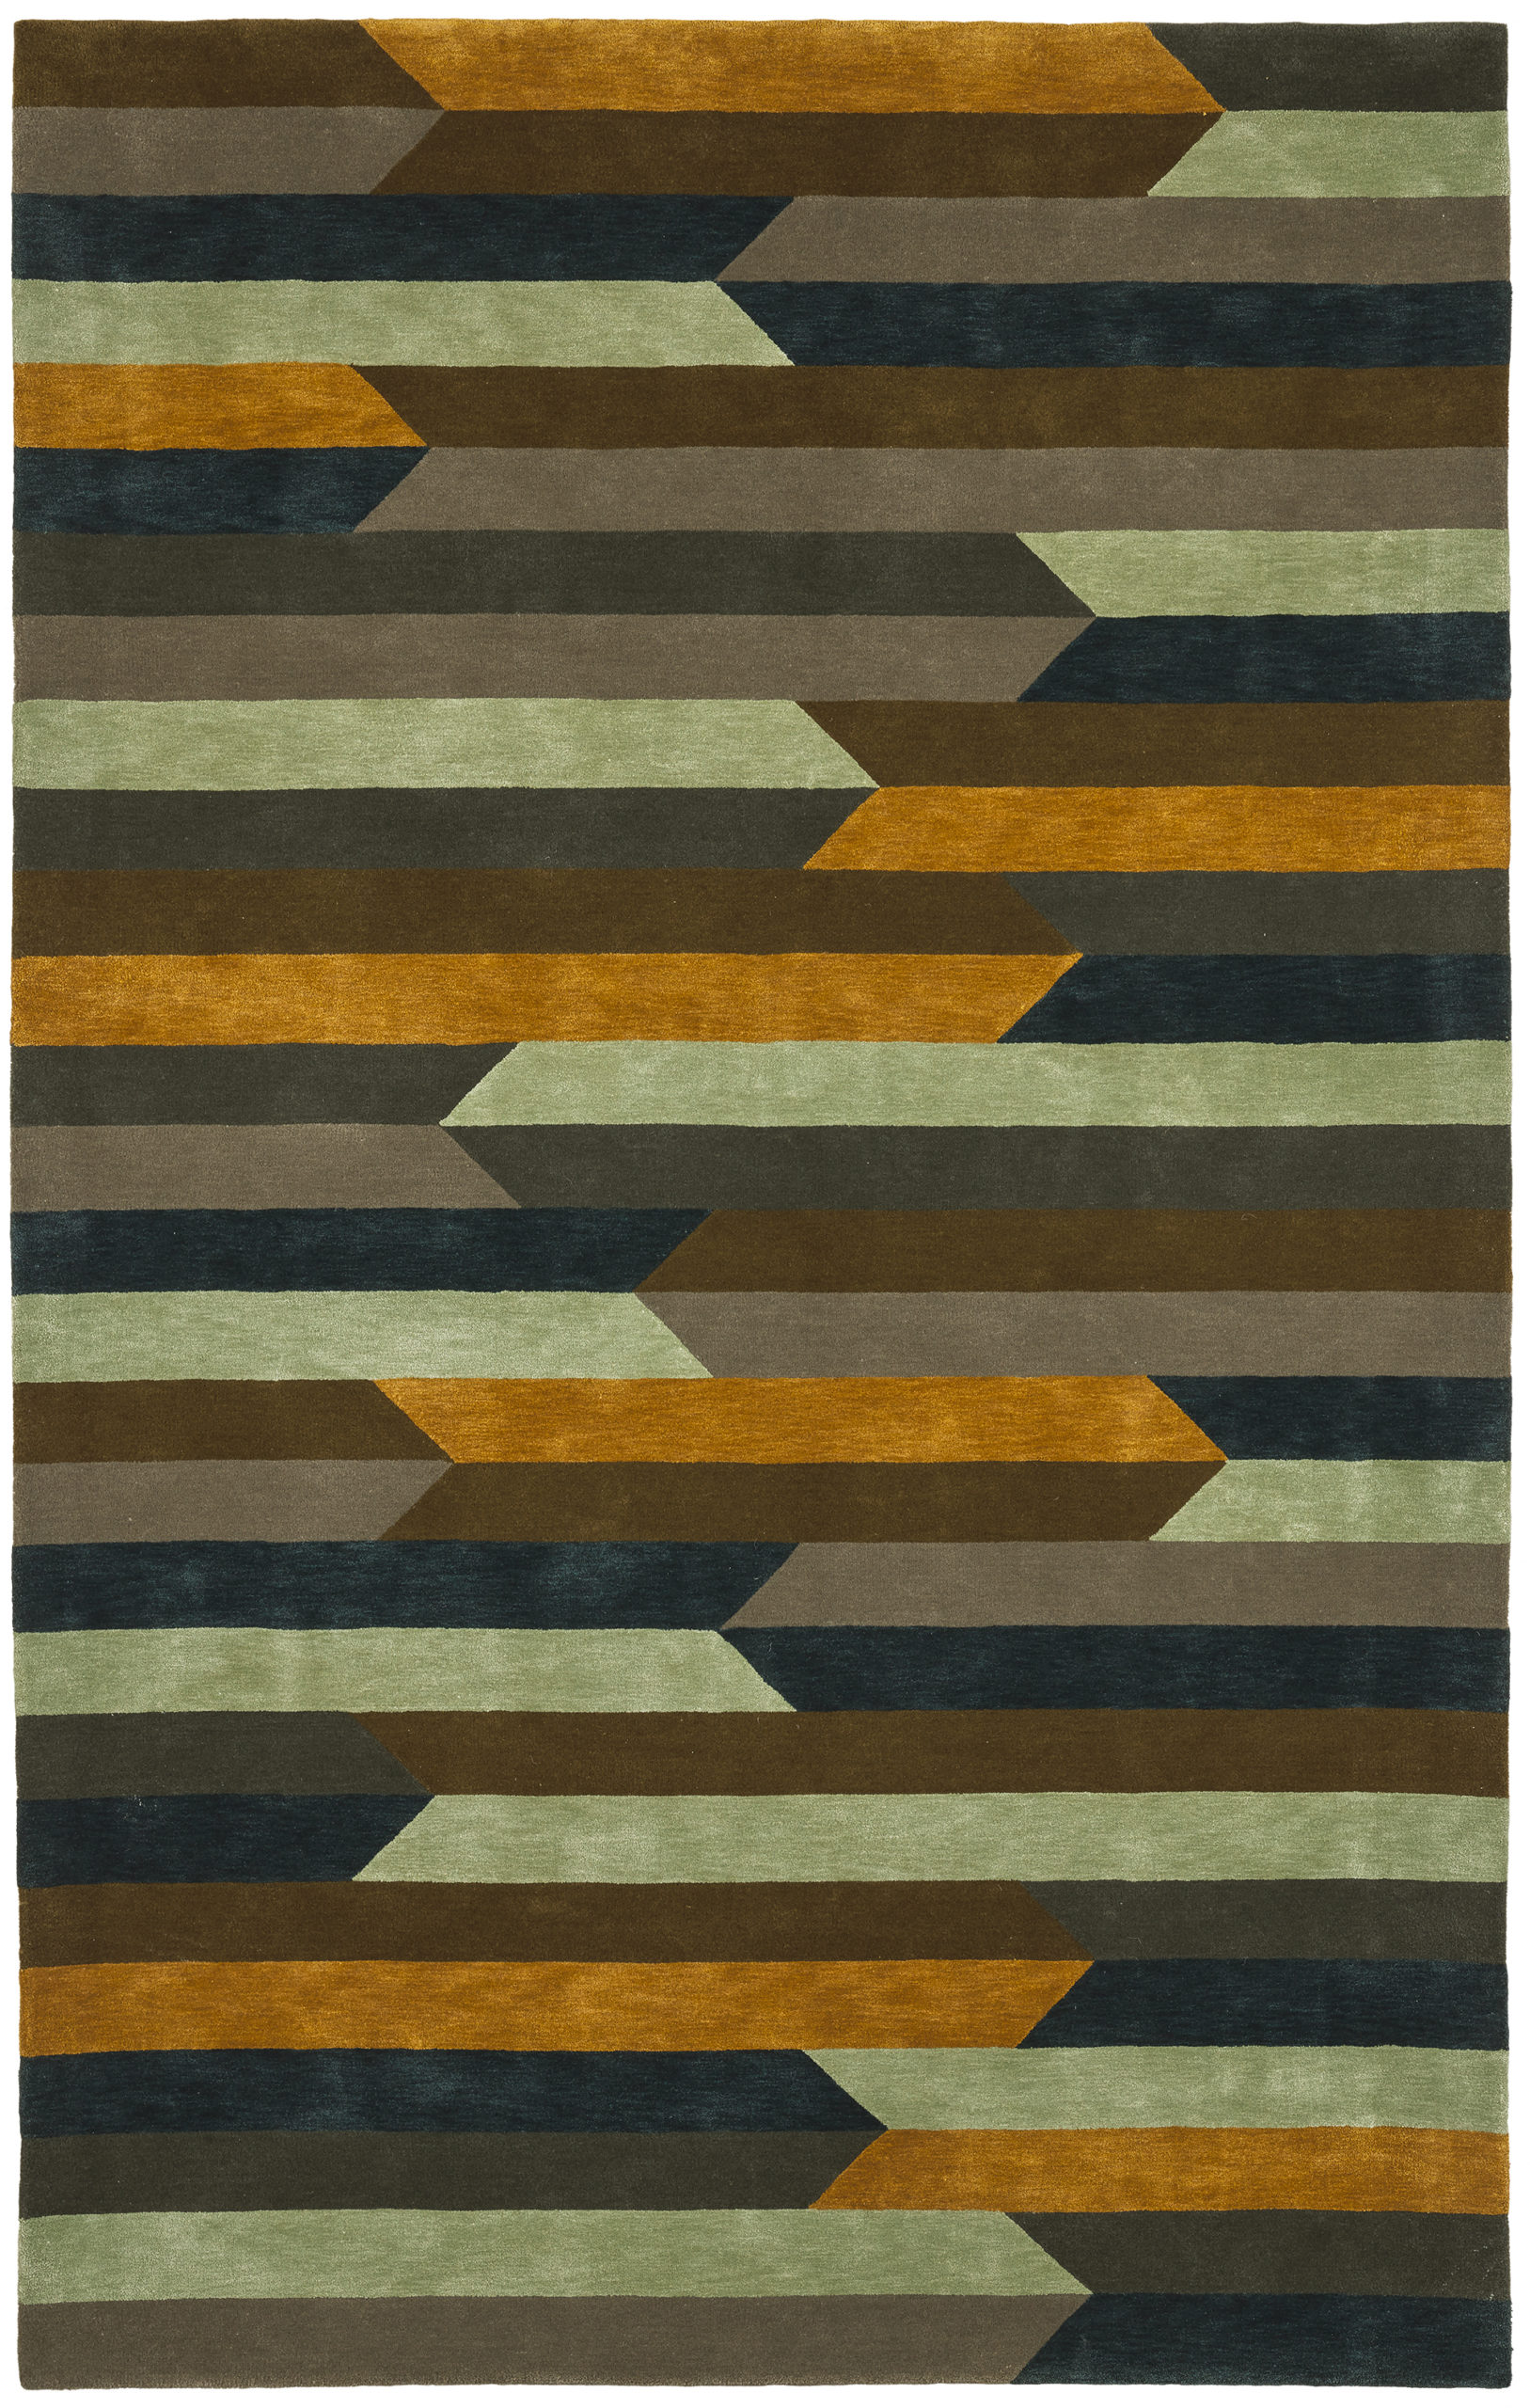 crosby_street_products_CSS_Sterling_Wes_RUG-scaled-1